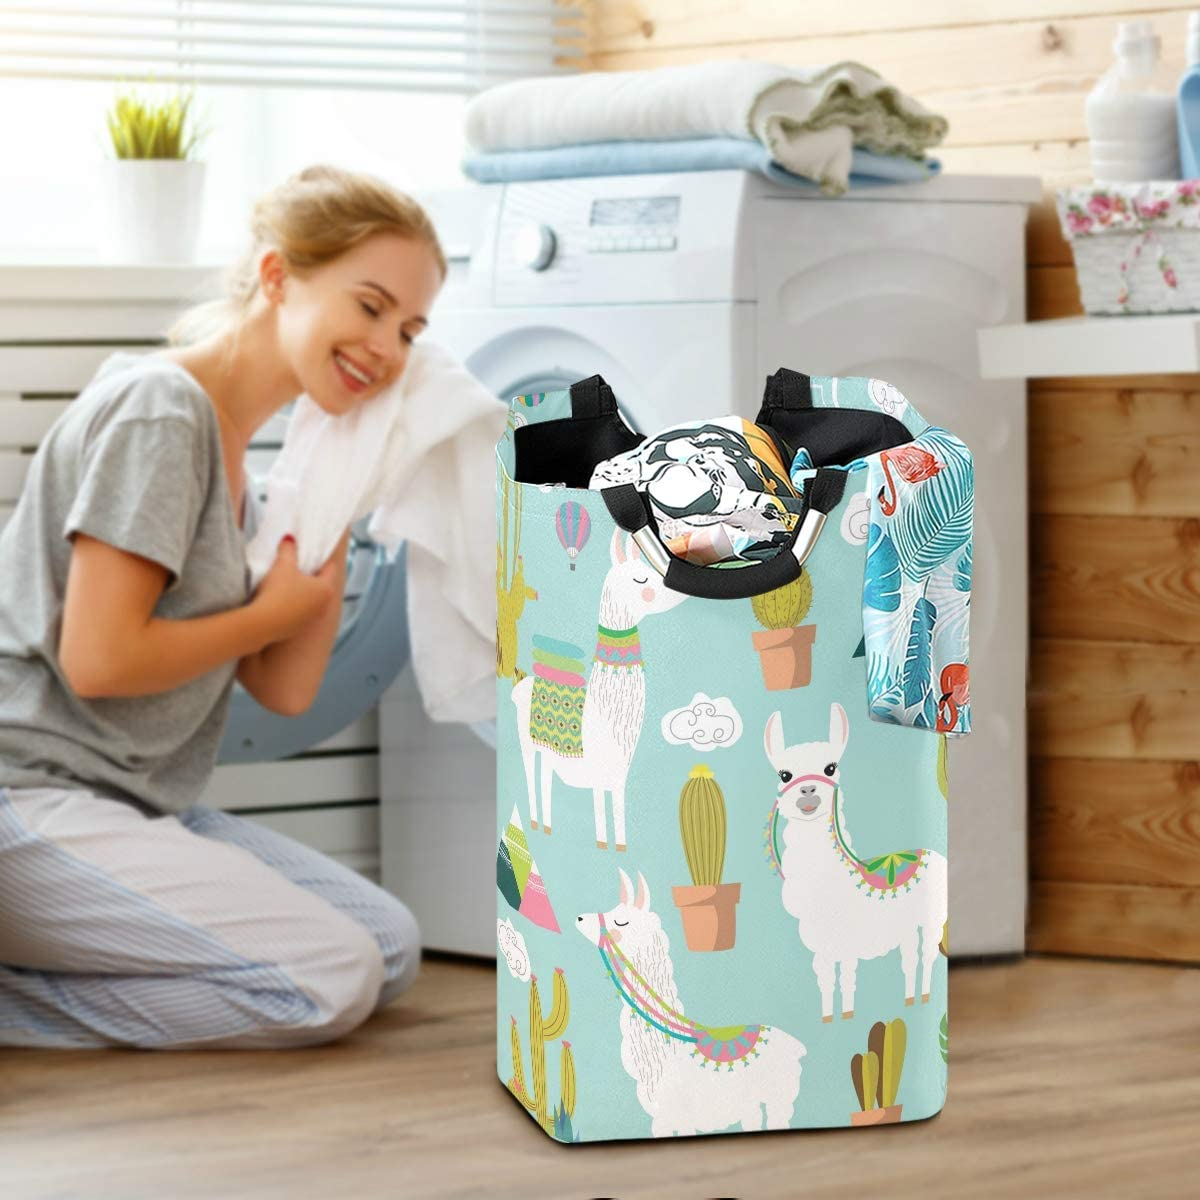 OREZI Cute Vector Alpaca and Cactus Laundry Hamper,Waterproof and Foldable Laundry Bag with Handles for Baby Nursery College Dorms Kids Bedroom Bathroom